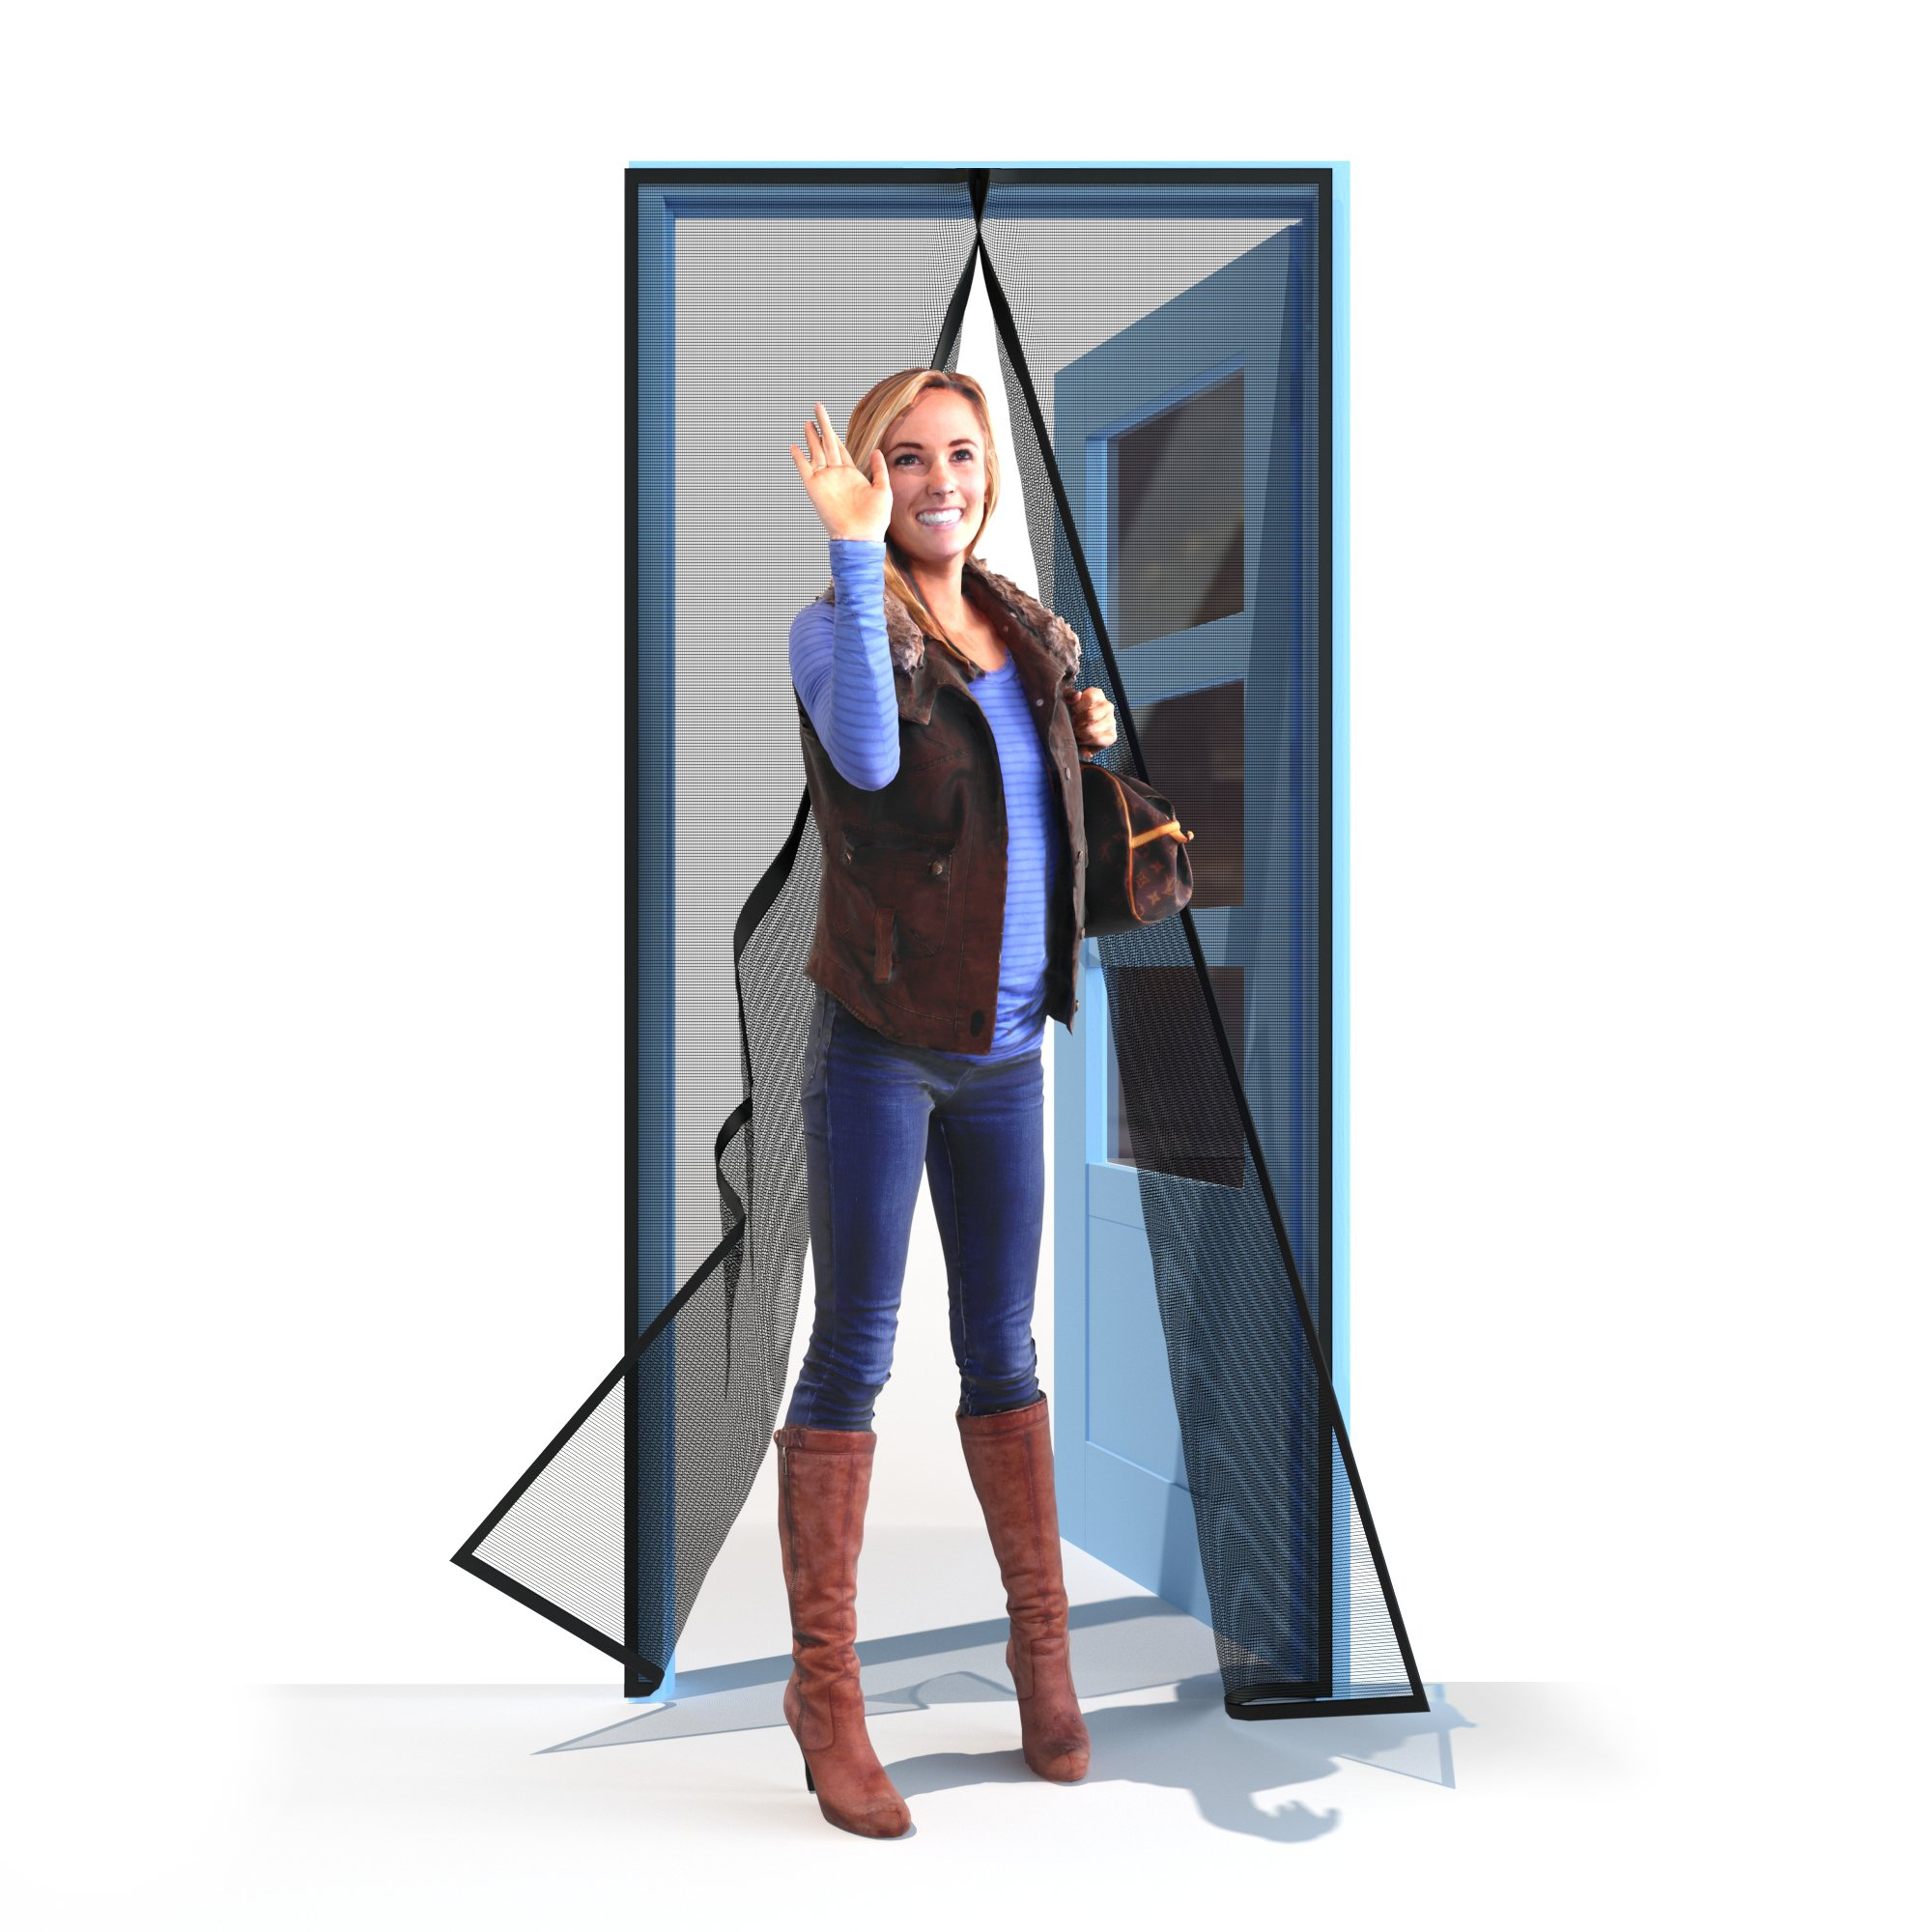 Home Diamonds Ultra Heavy Duty Fiberglass Magnetic Mesh Screen Door Full Frame Velcro, 28 Strong Magnets, Fit Doors up to 34 x 81-inches by Home Diamonds (Image #5)